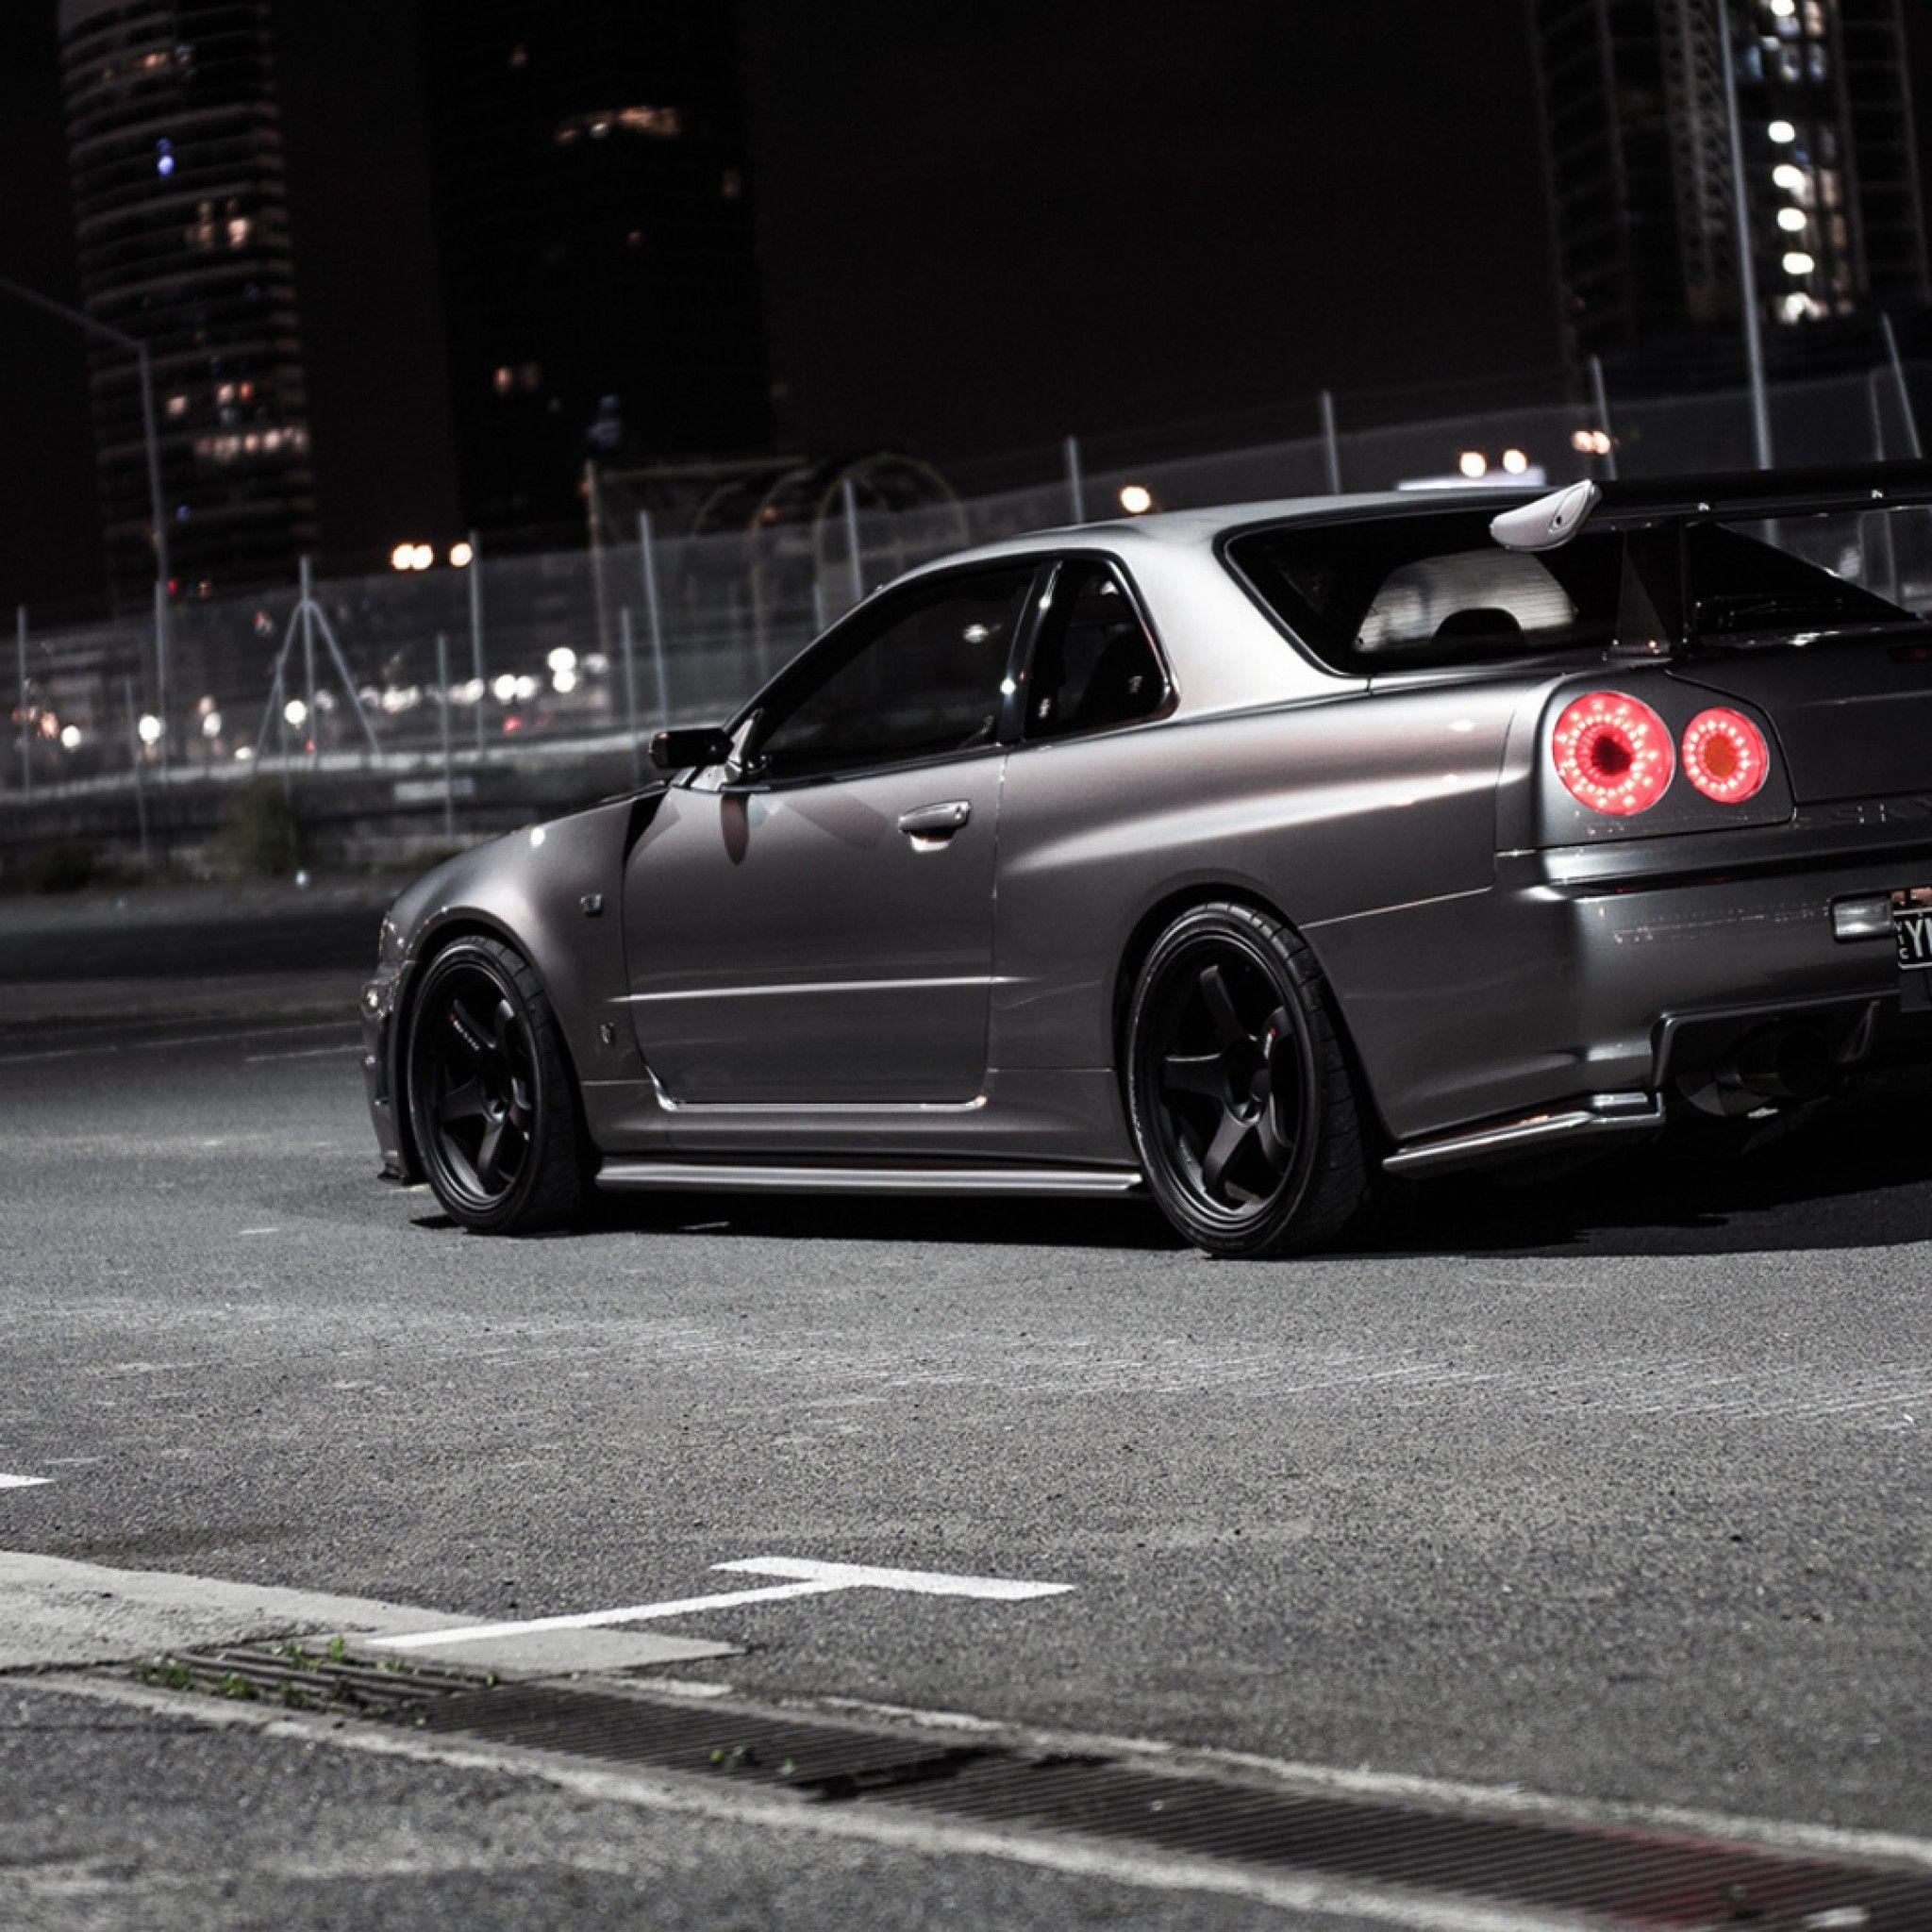 Nissan Gtr Ipad Wallpaper: GTR R32 Wallpapers